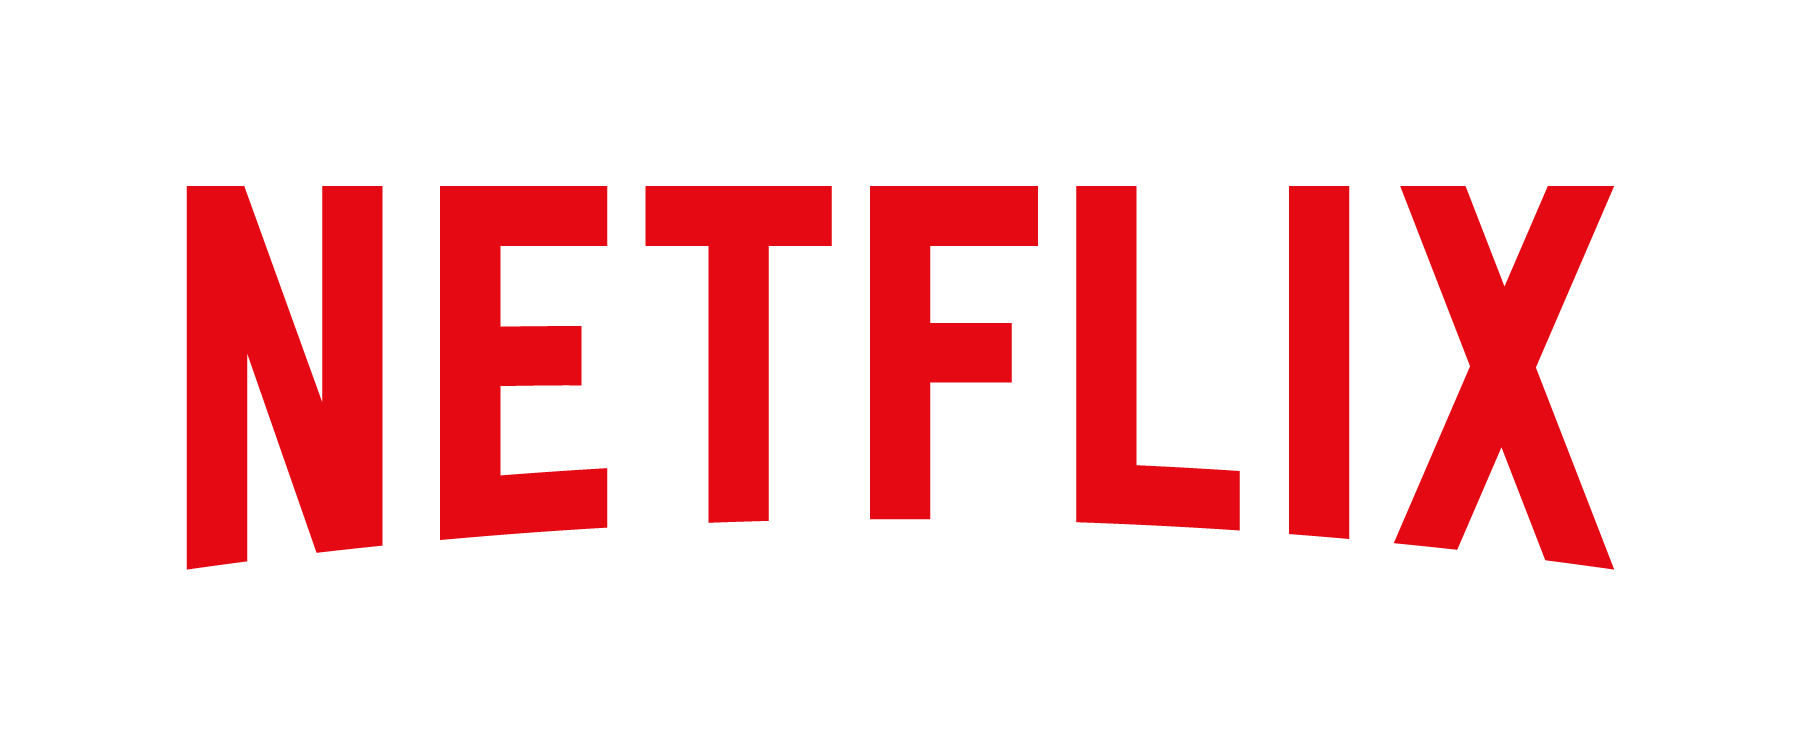 Does Netflix Have a Winning Strategy for Video Games?